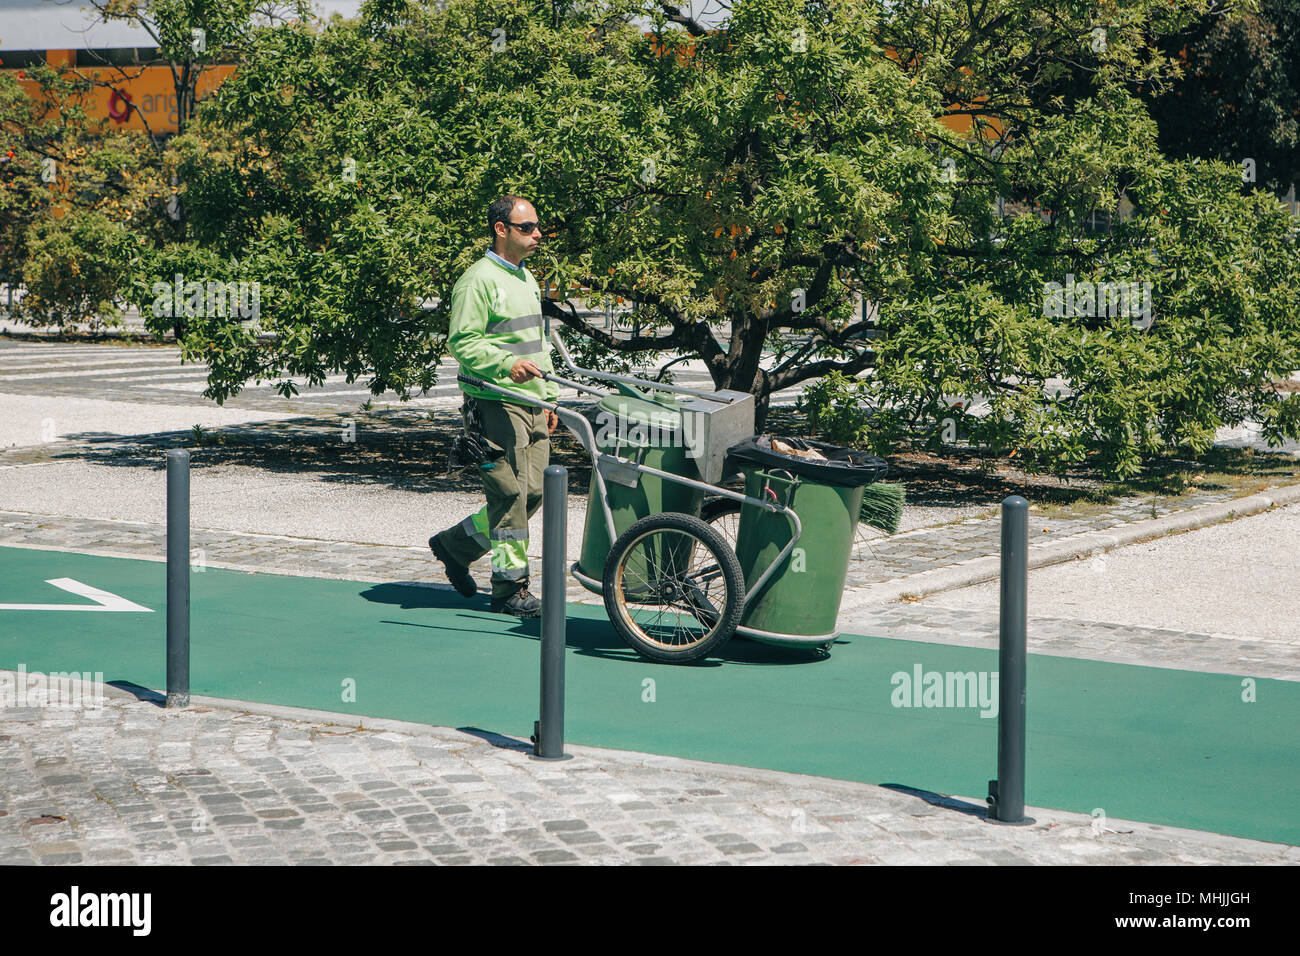 Lisbon, April 25, 2018: A professional cleaner works on a city street. Cleaning the territory and taking care of ecological well-being. - Stock Image